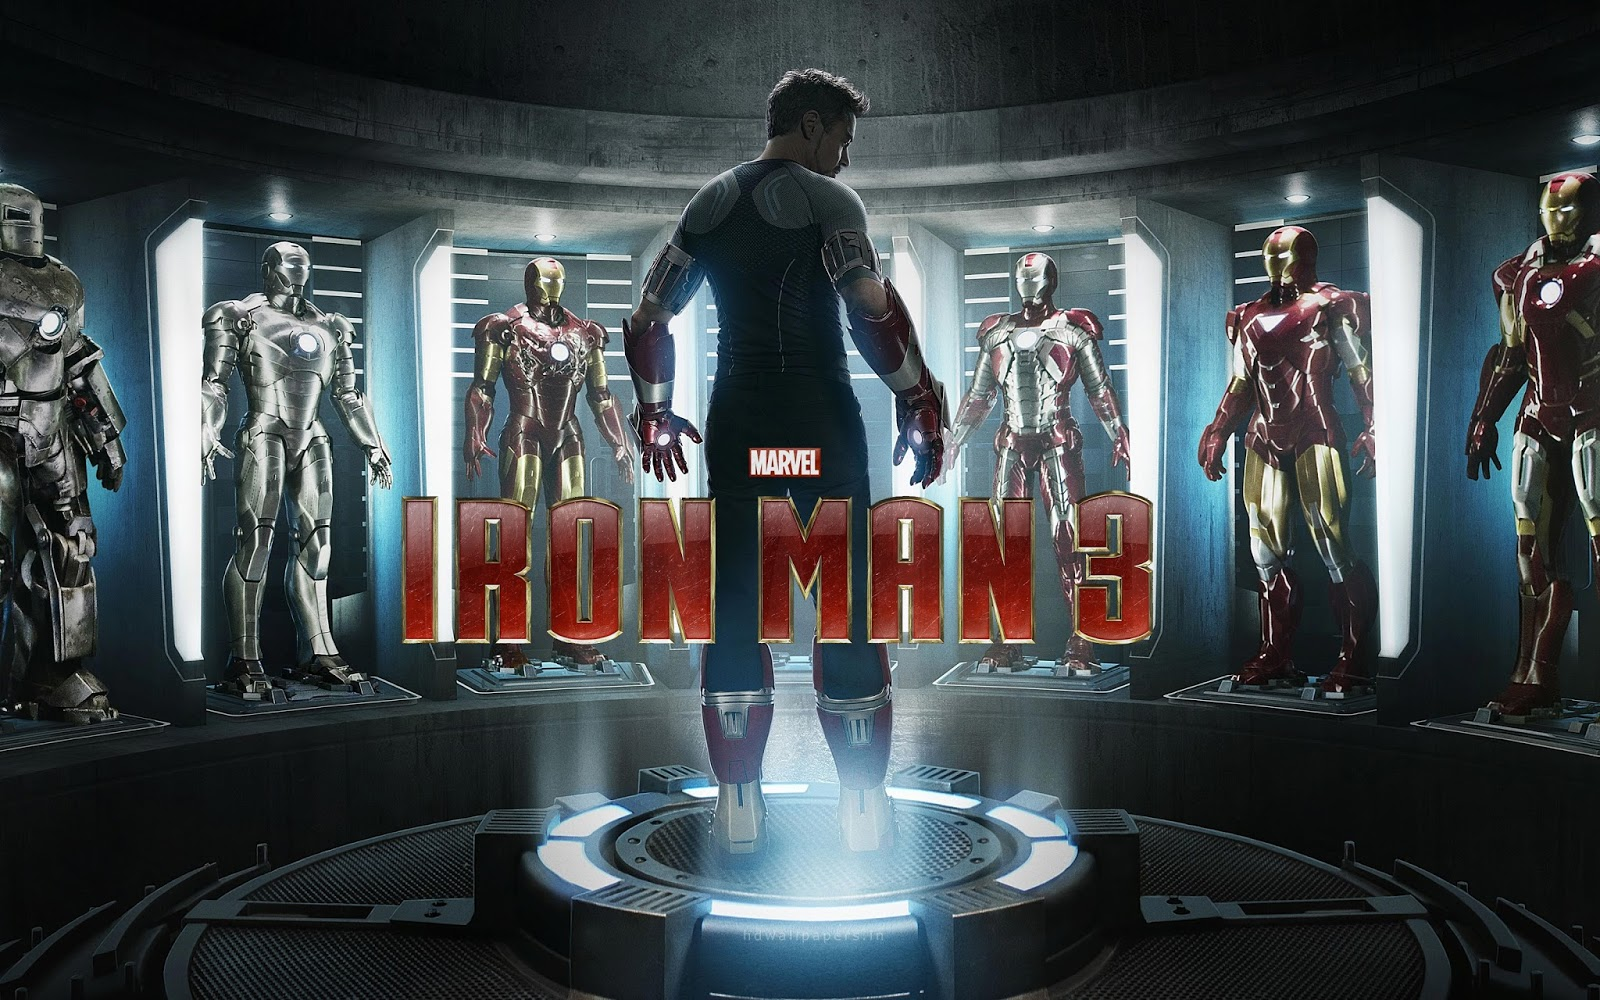 iron man 3 hacks cheats tools trainer 100 % working on android and ios